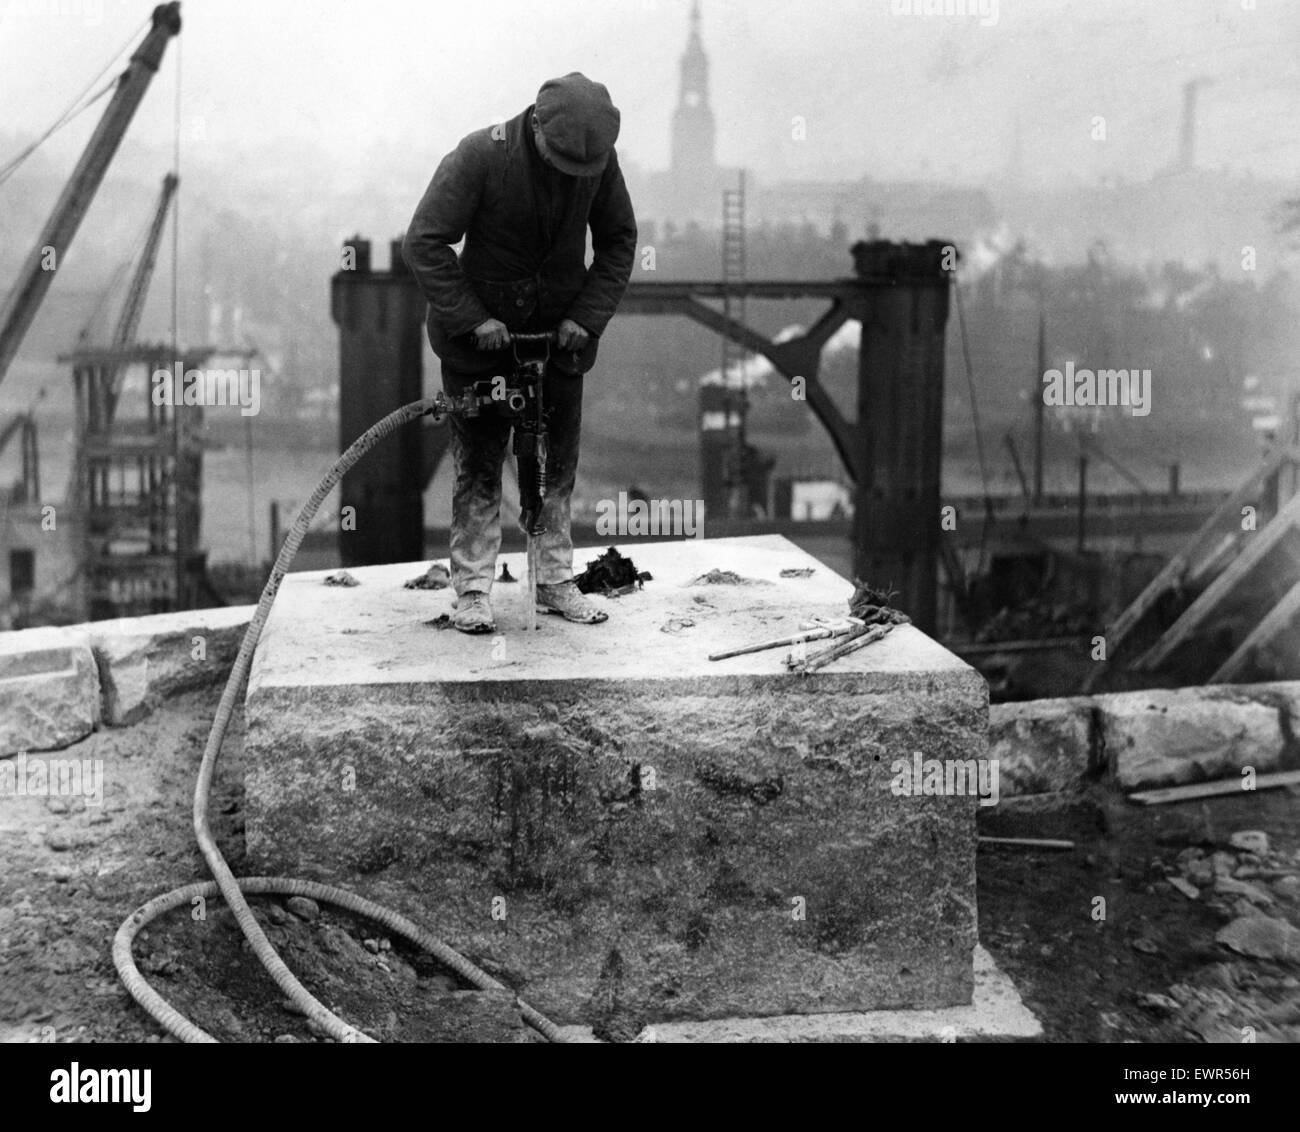 Construction Jobs Black And White Stock Photos Amp Images